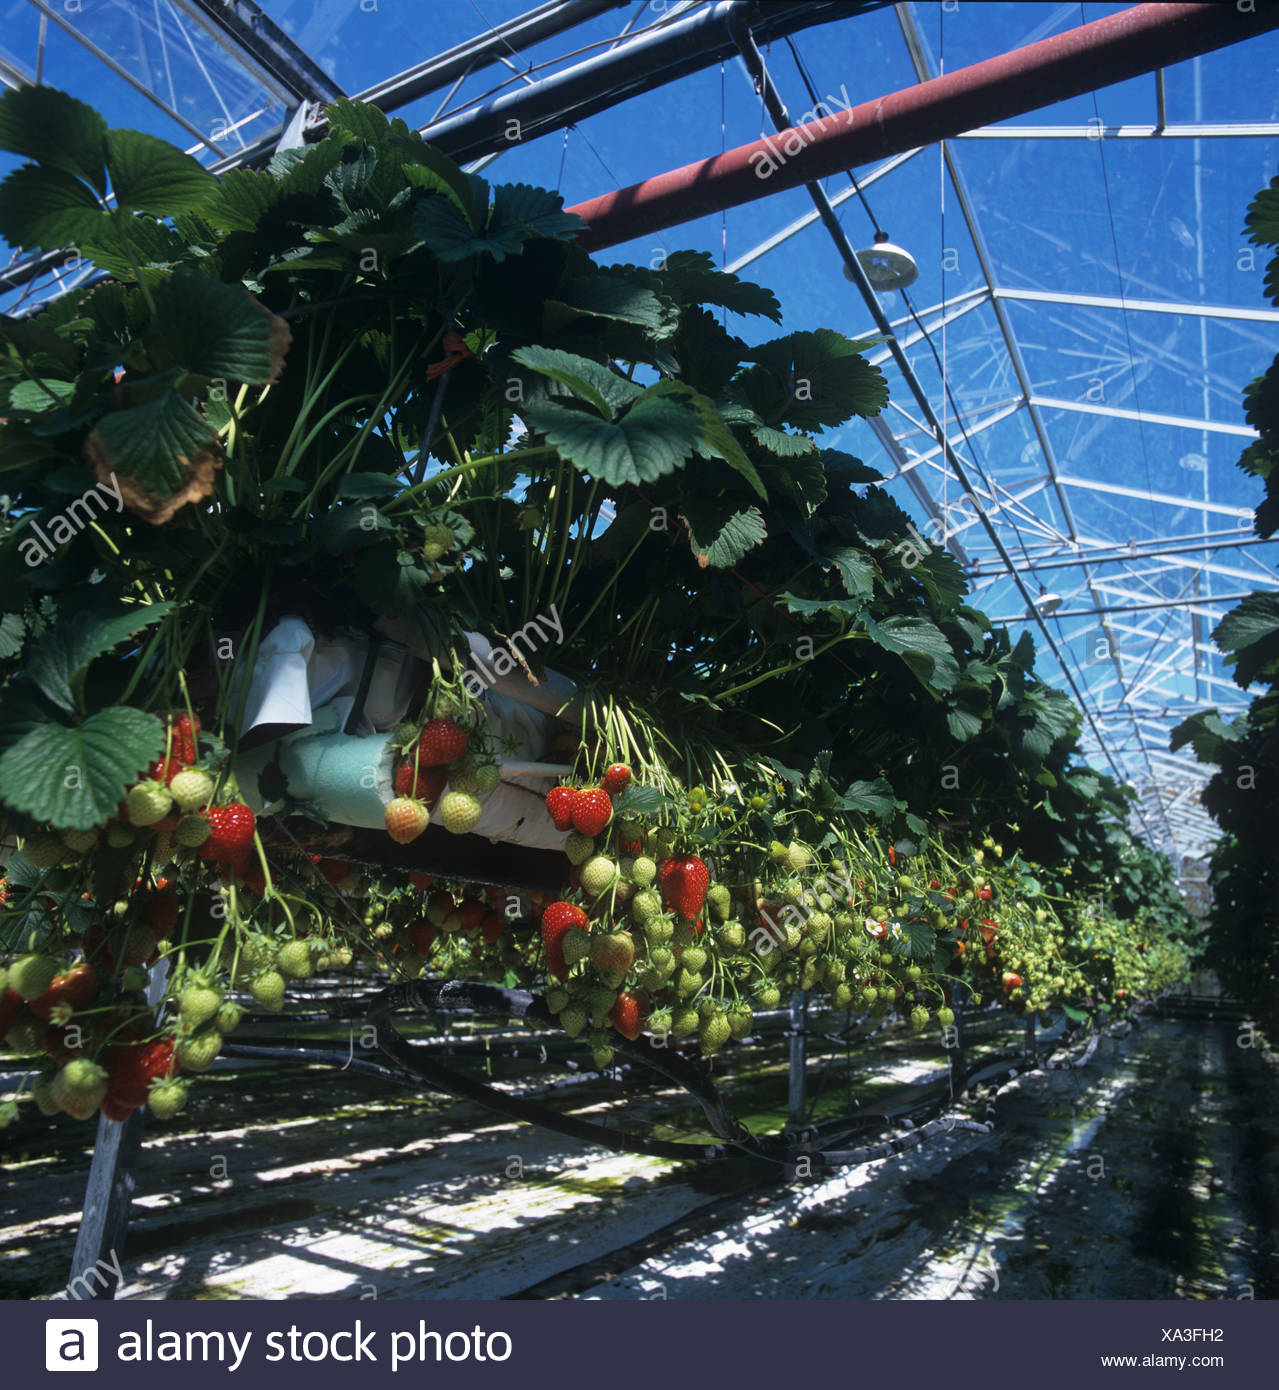 Strawberries variety Elsanta in suspended trays under glass with nutrient watering system - Stock Image